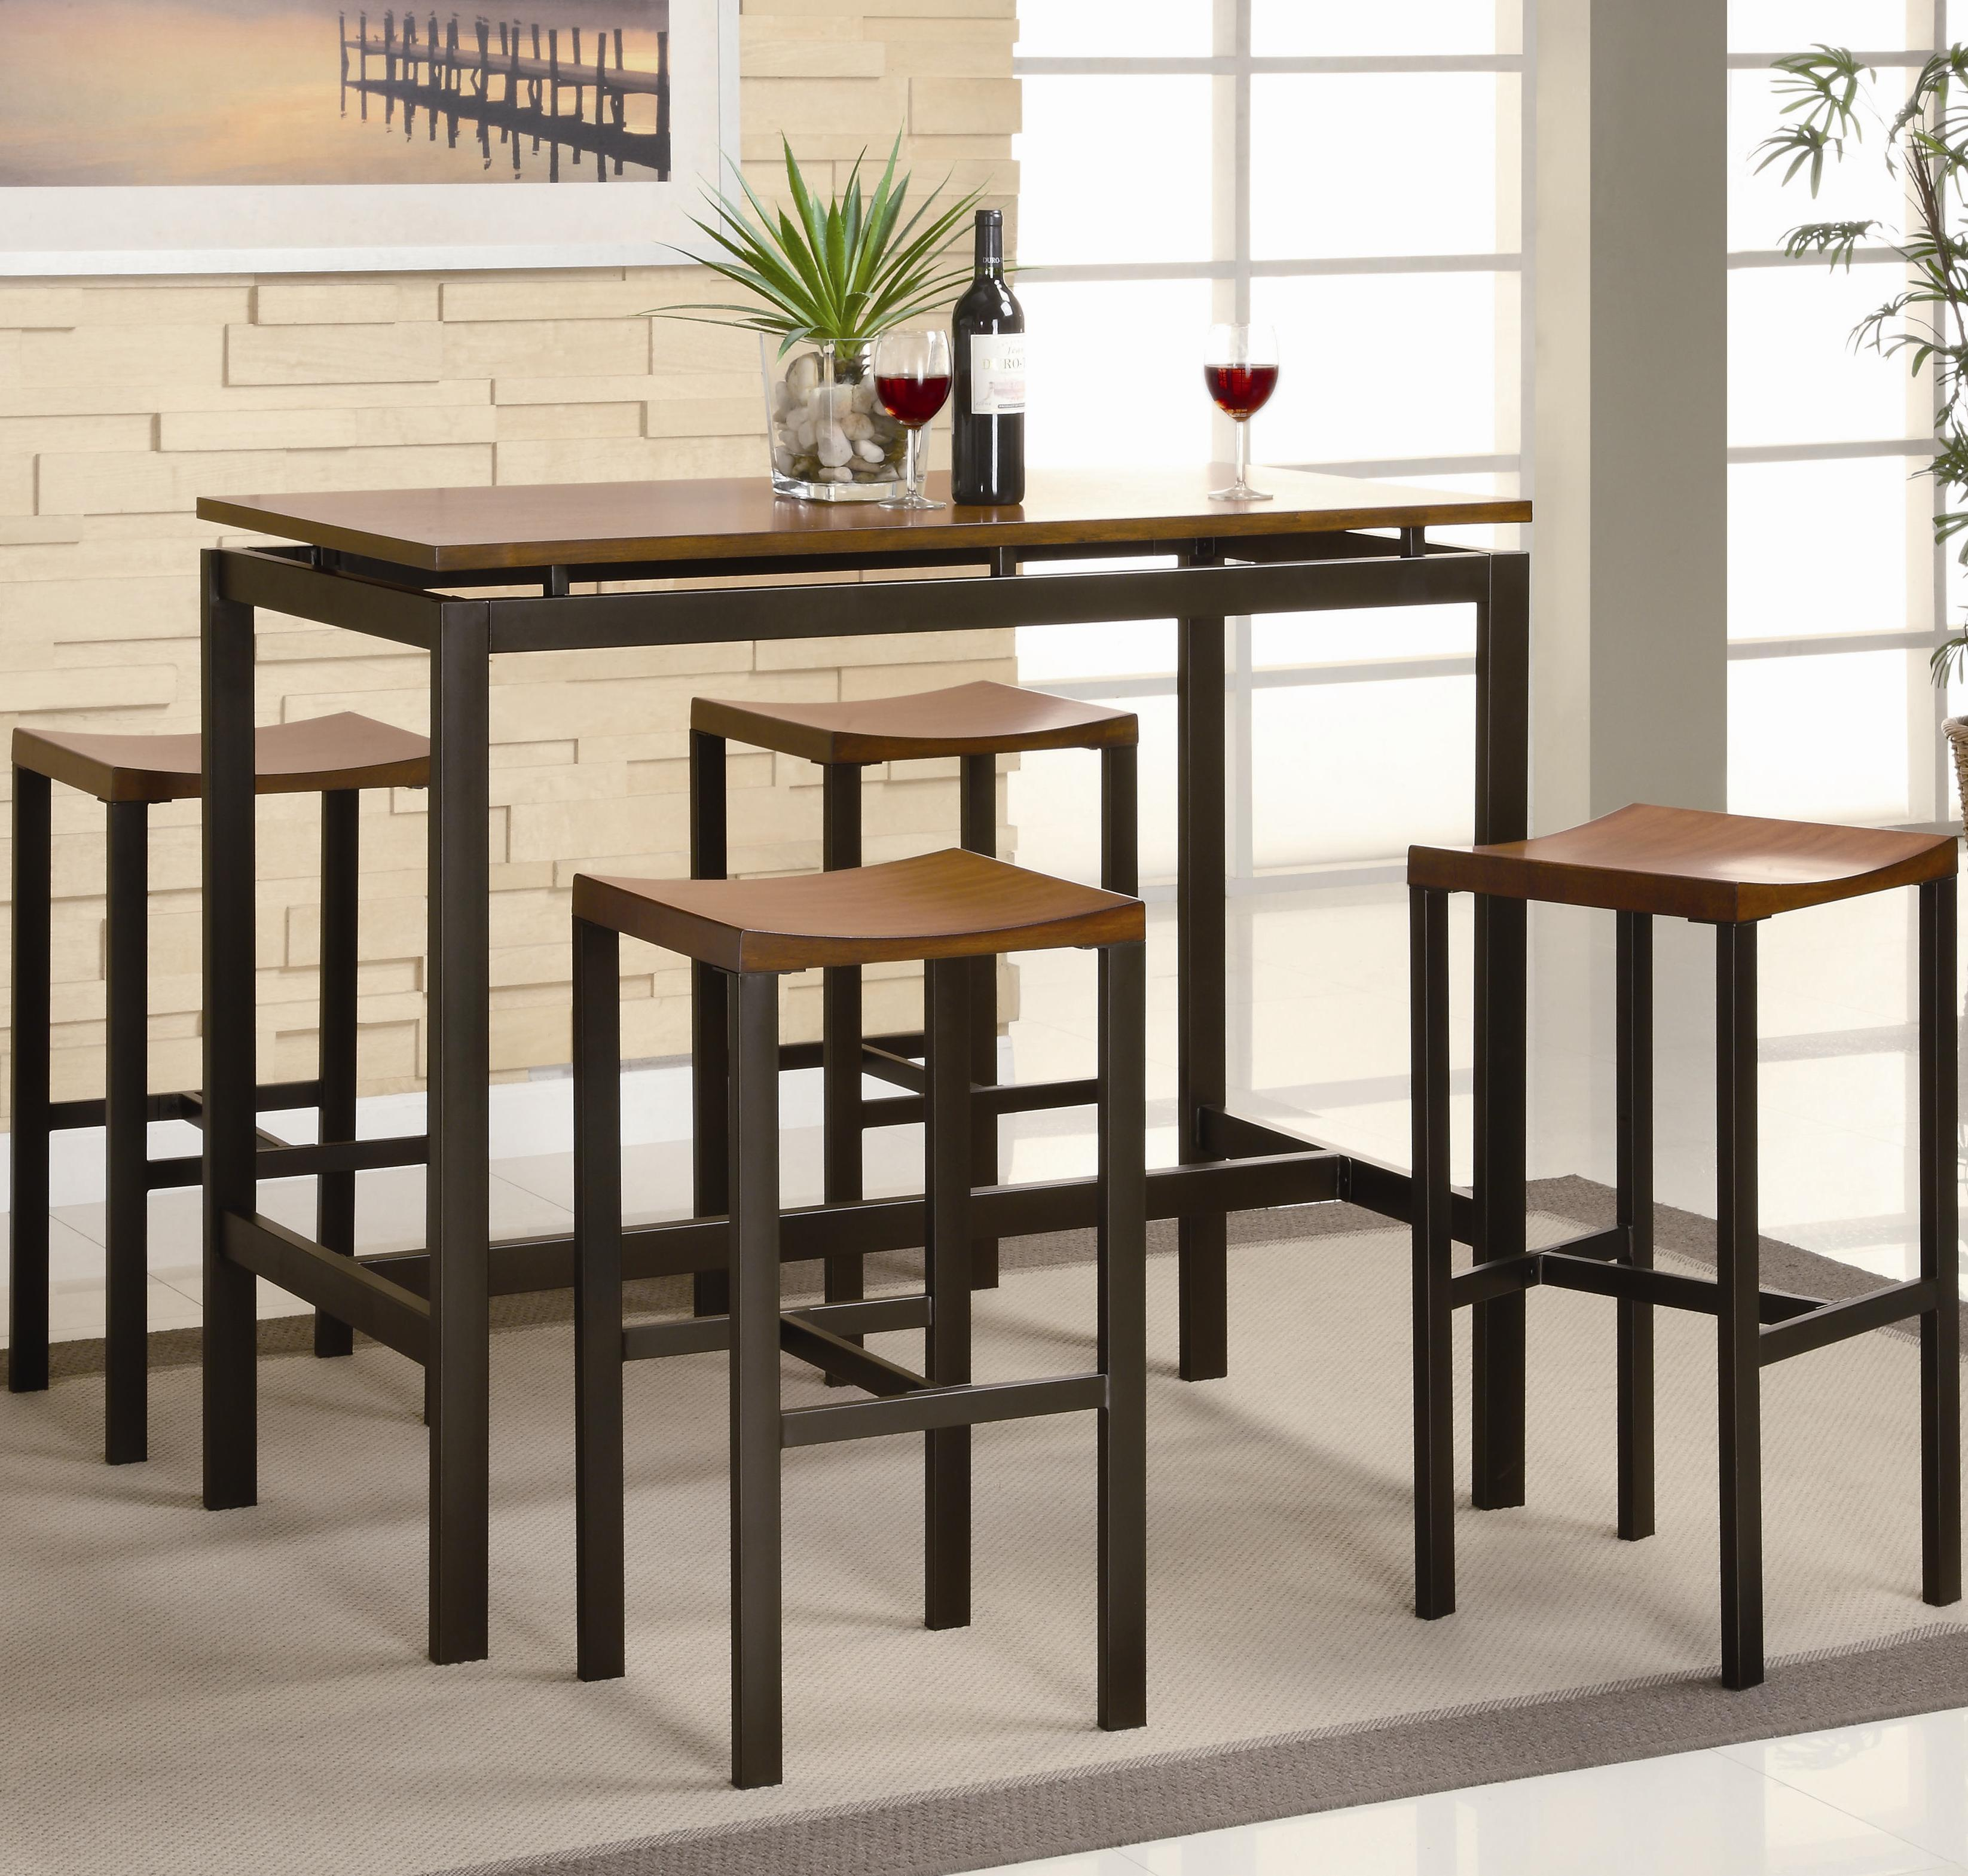 Superbe Coaster #150097 Atlus Counter Height Table And Stools